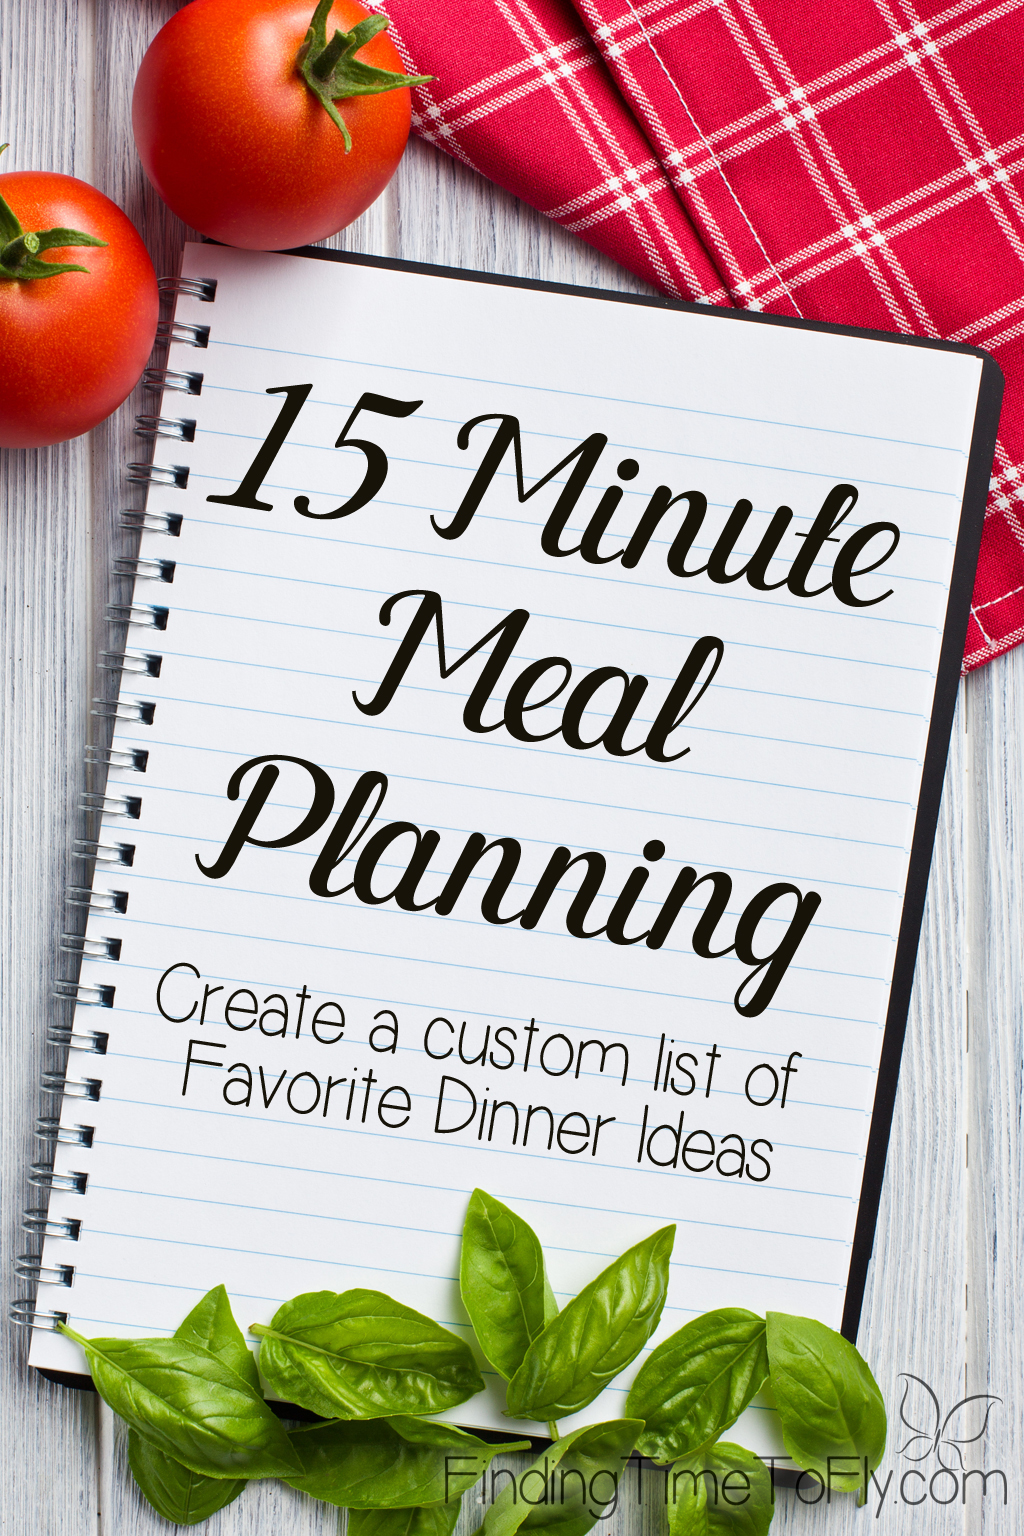 Simplest meal planning system ever! I love the idea of creating a favorite dinner ideas list. Simply brilliant!